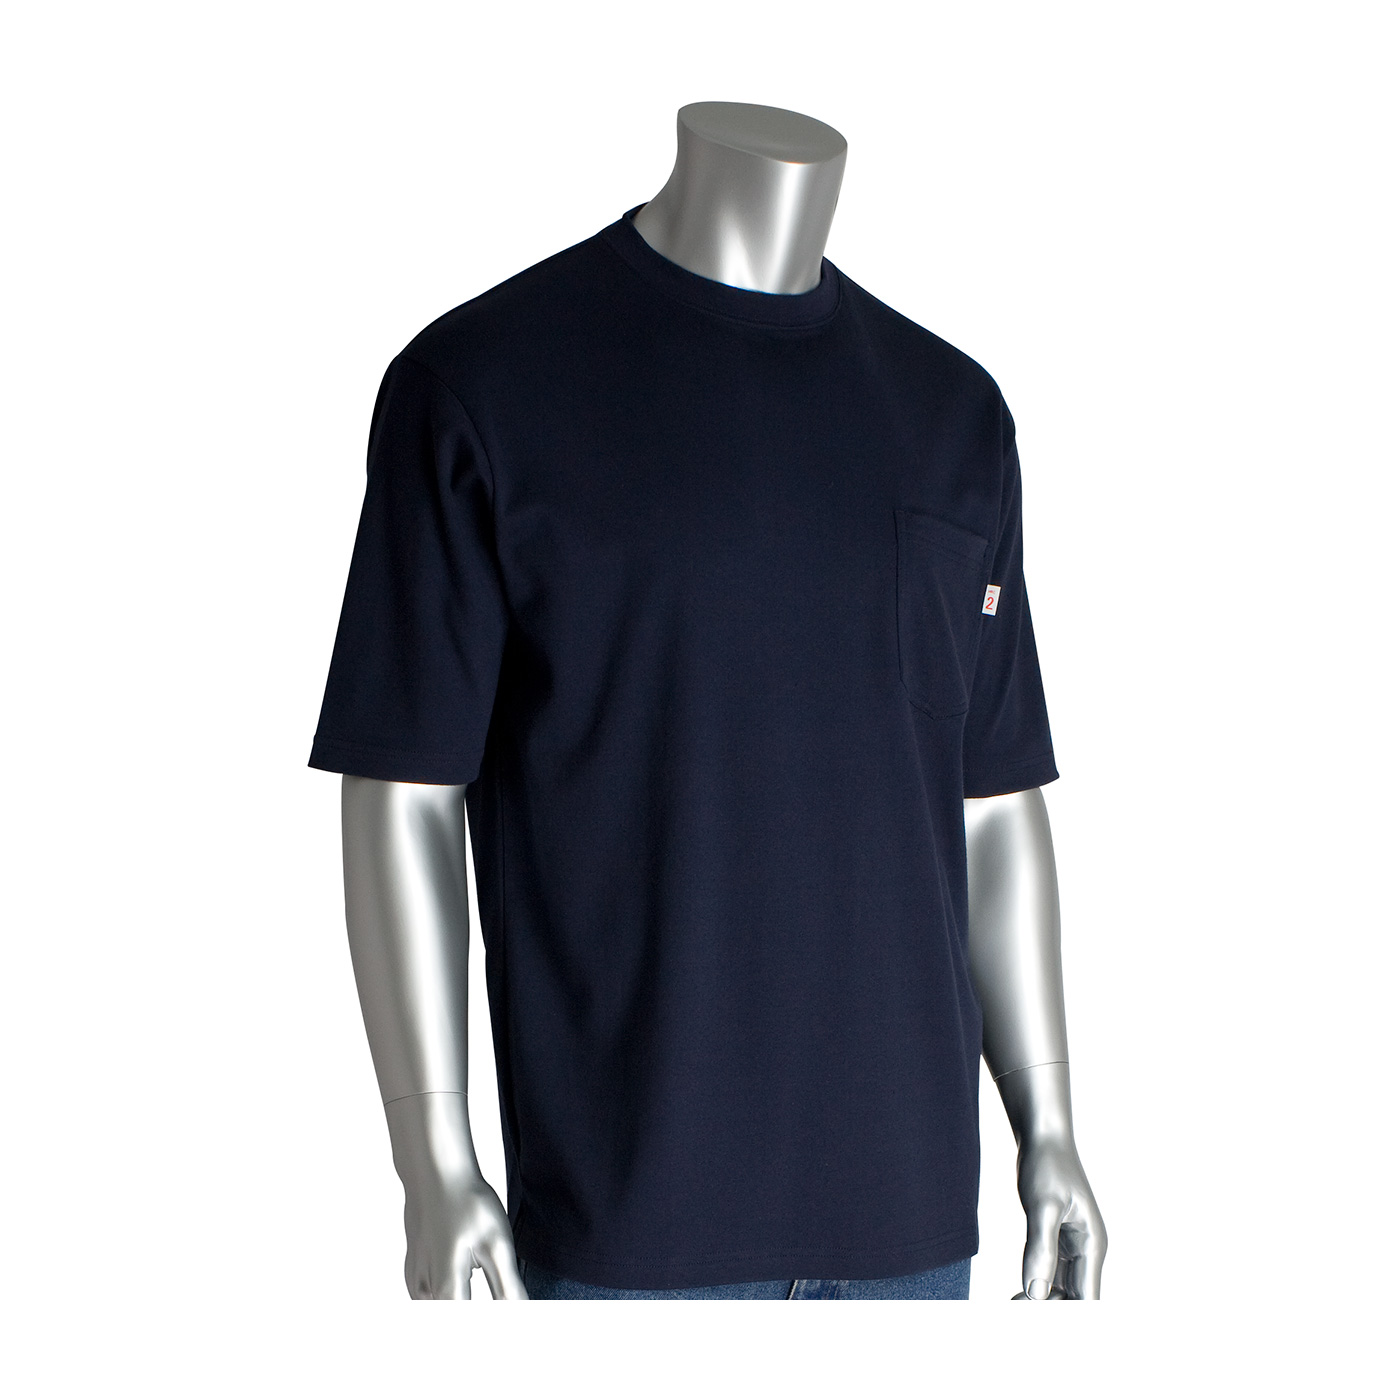 9ac50399c2a8 Flame Resistant Short Sleeve Shirts